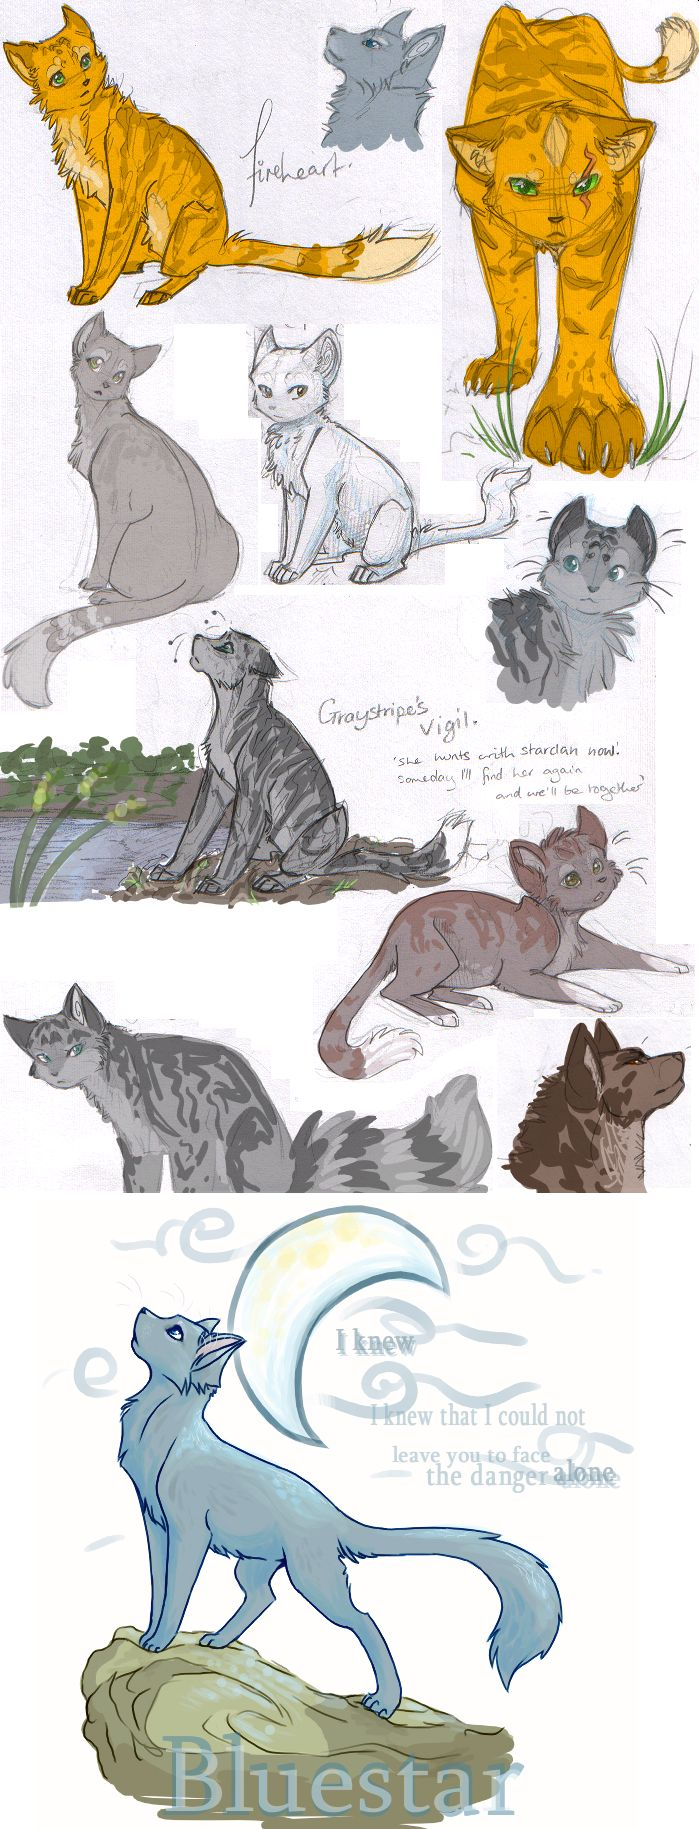 warriors pictures of Cinderpelt - Google Search